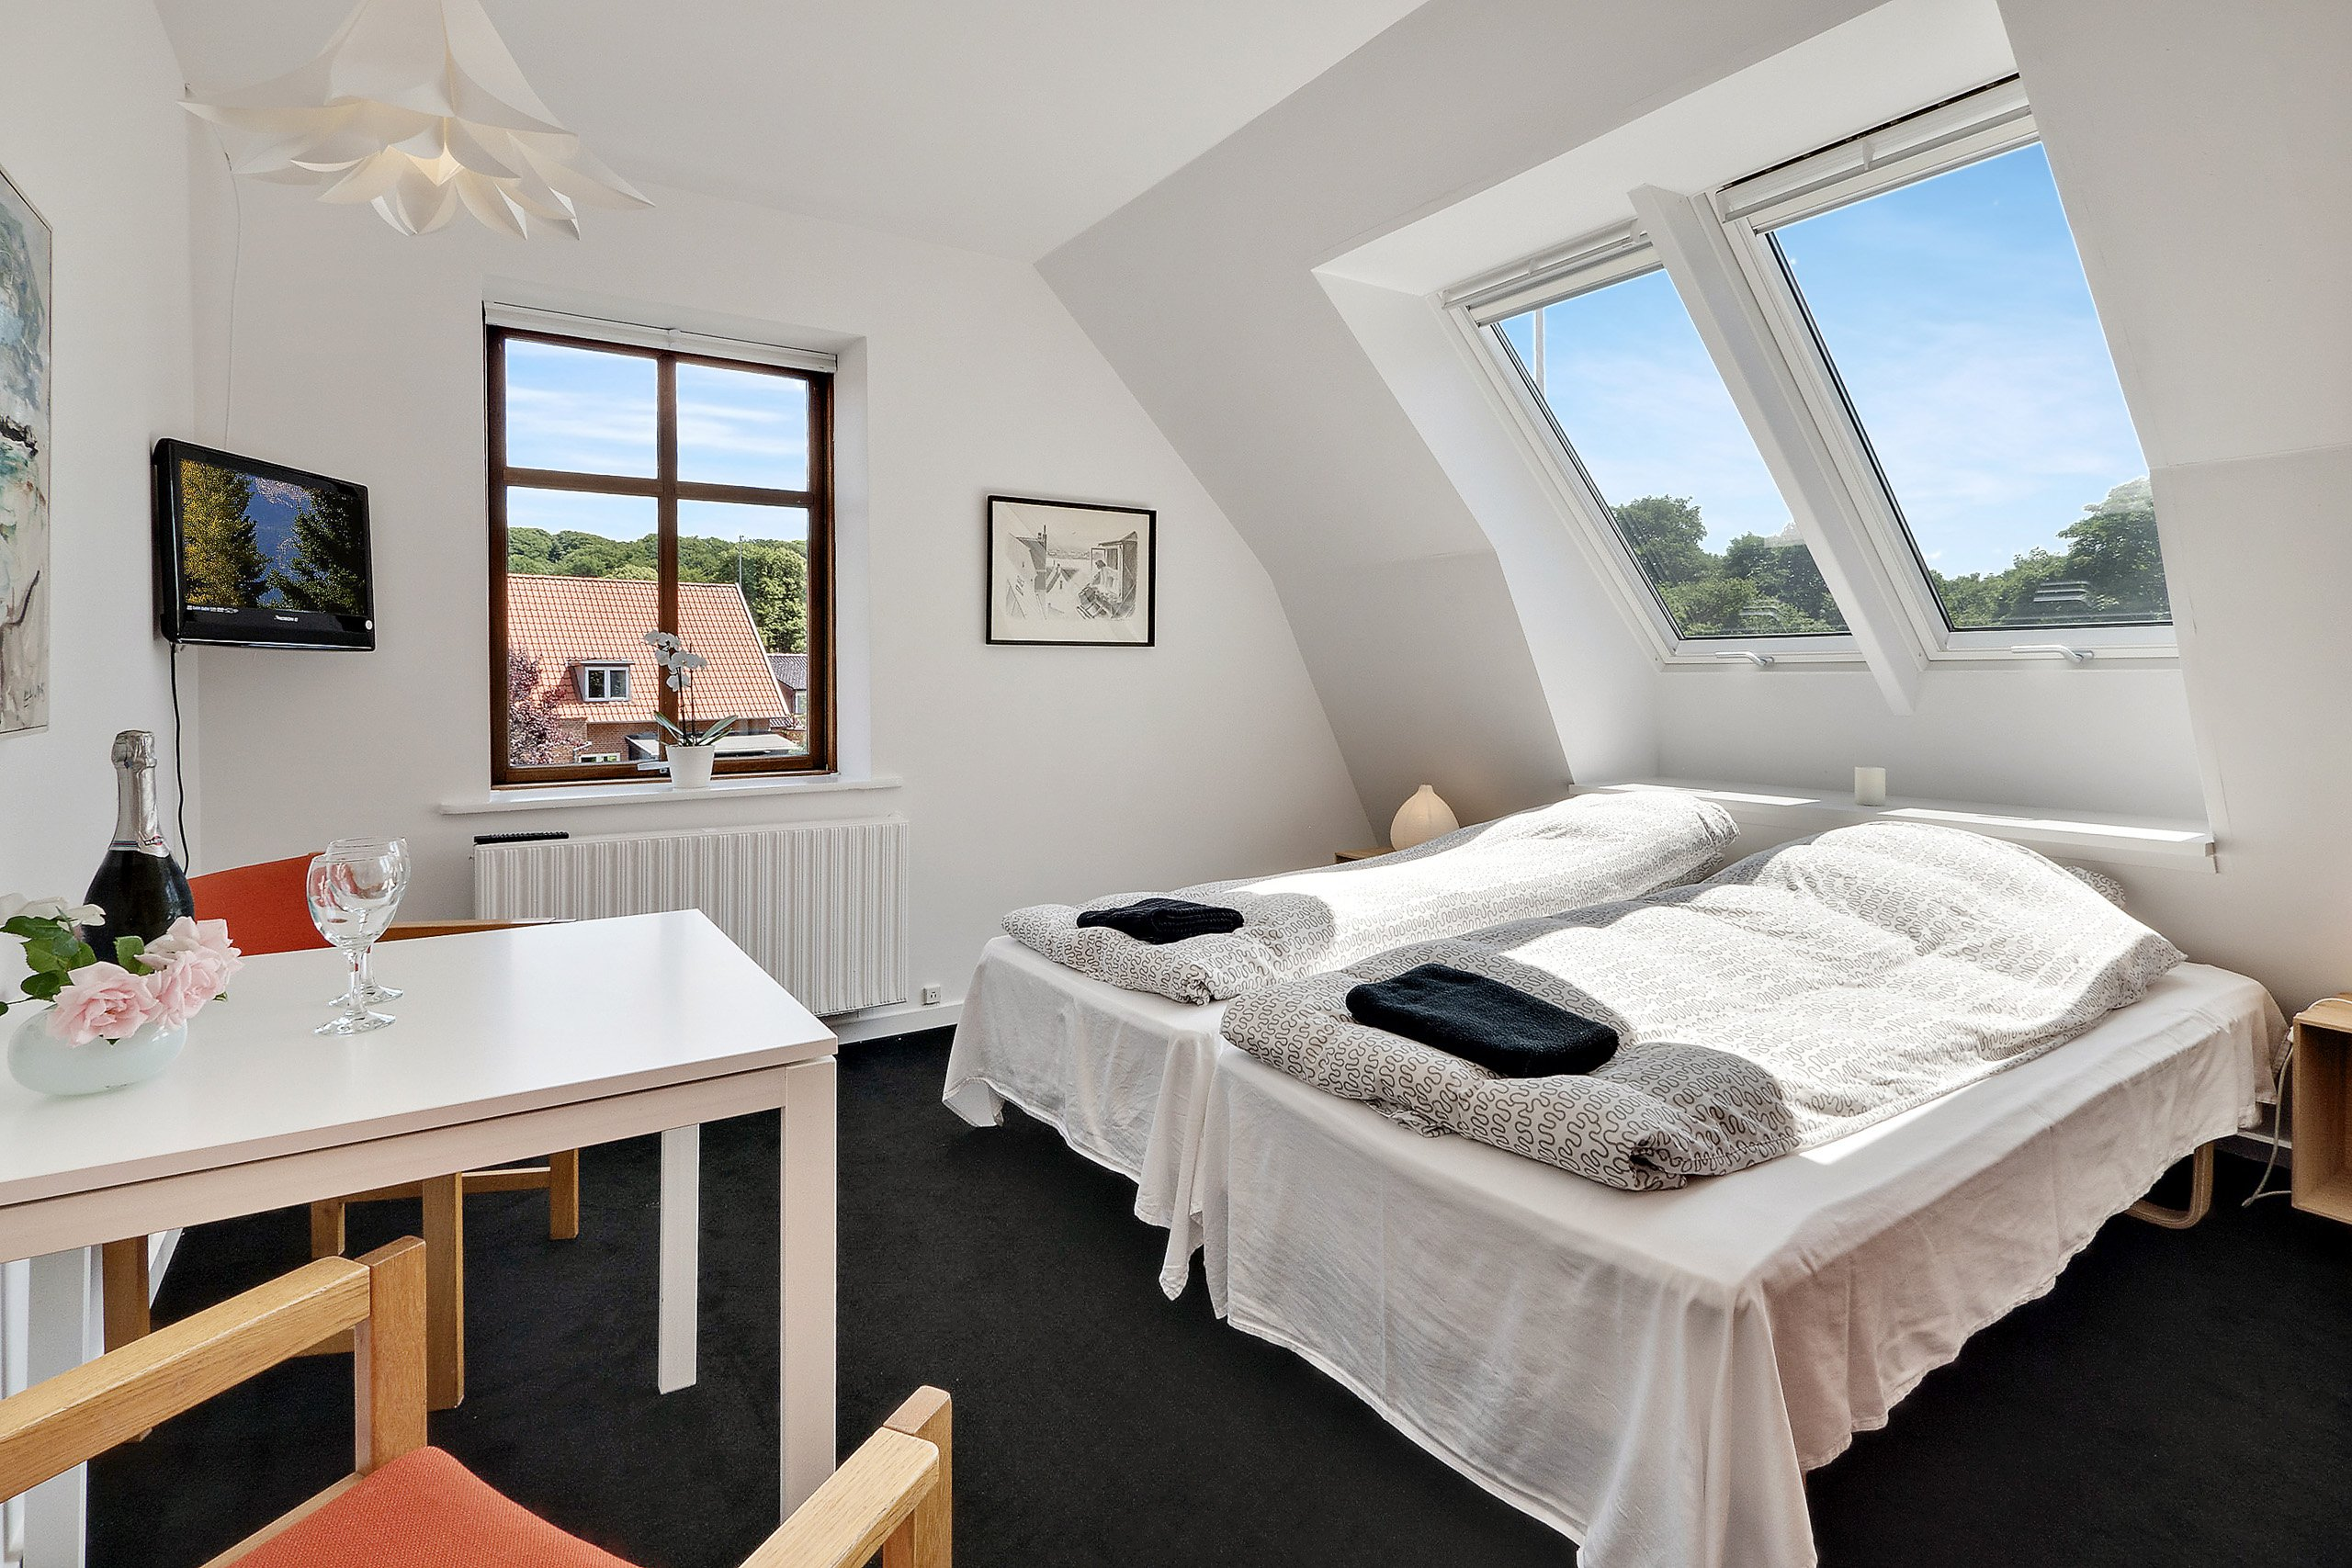 Villa Zeltner | Overnatning i silkeborg, bed and breakfast silkeborg, Bed and breakfast jylland ...